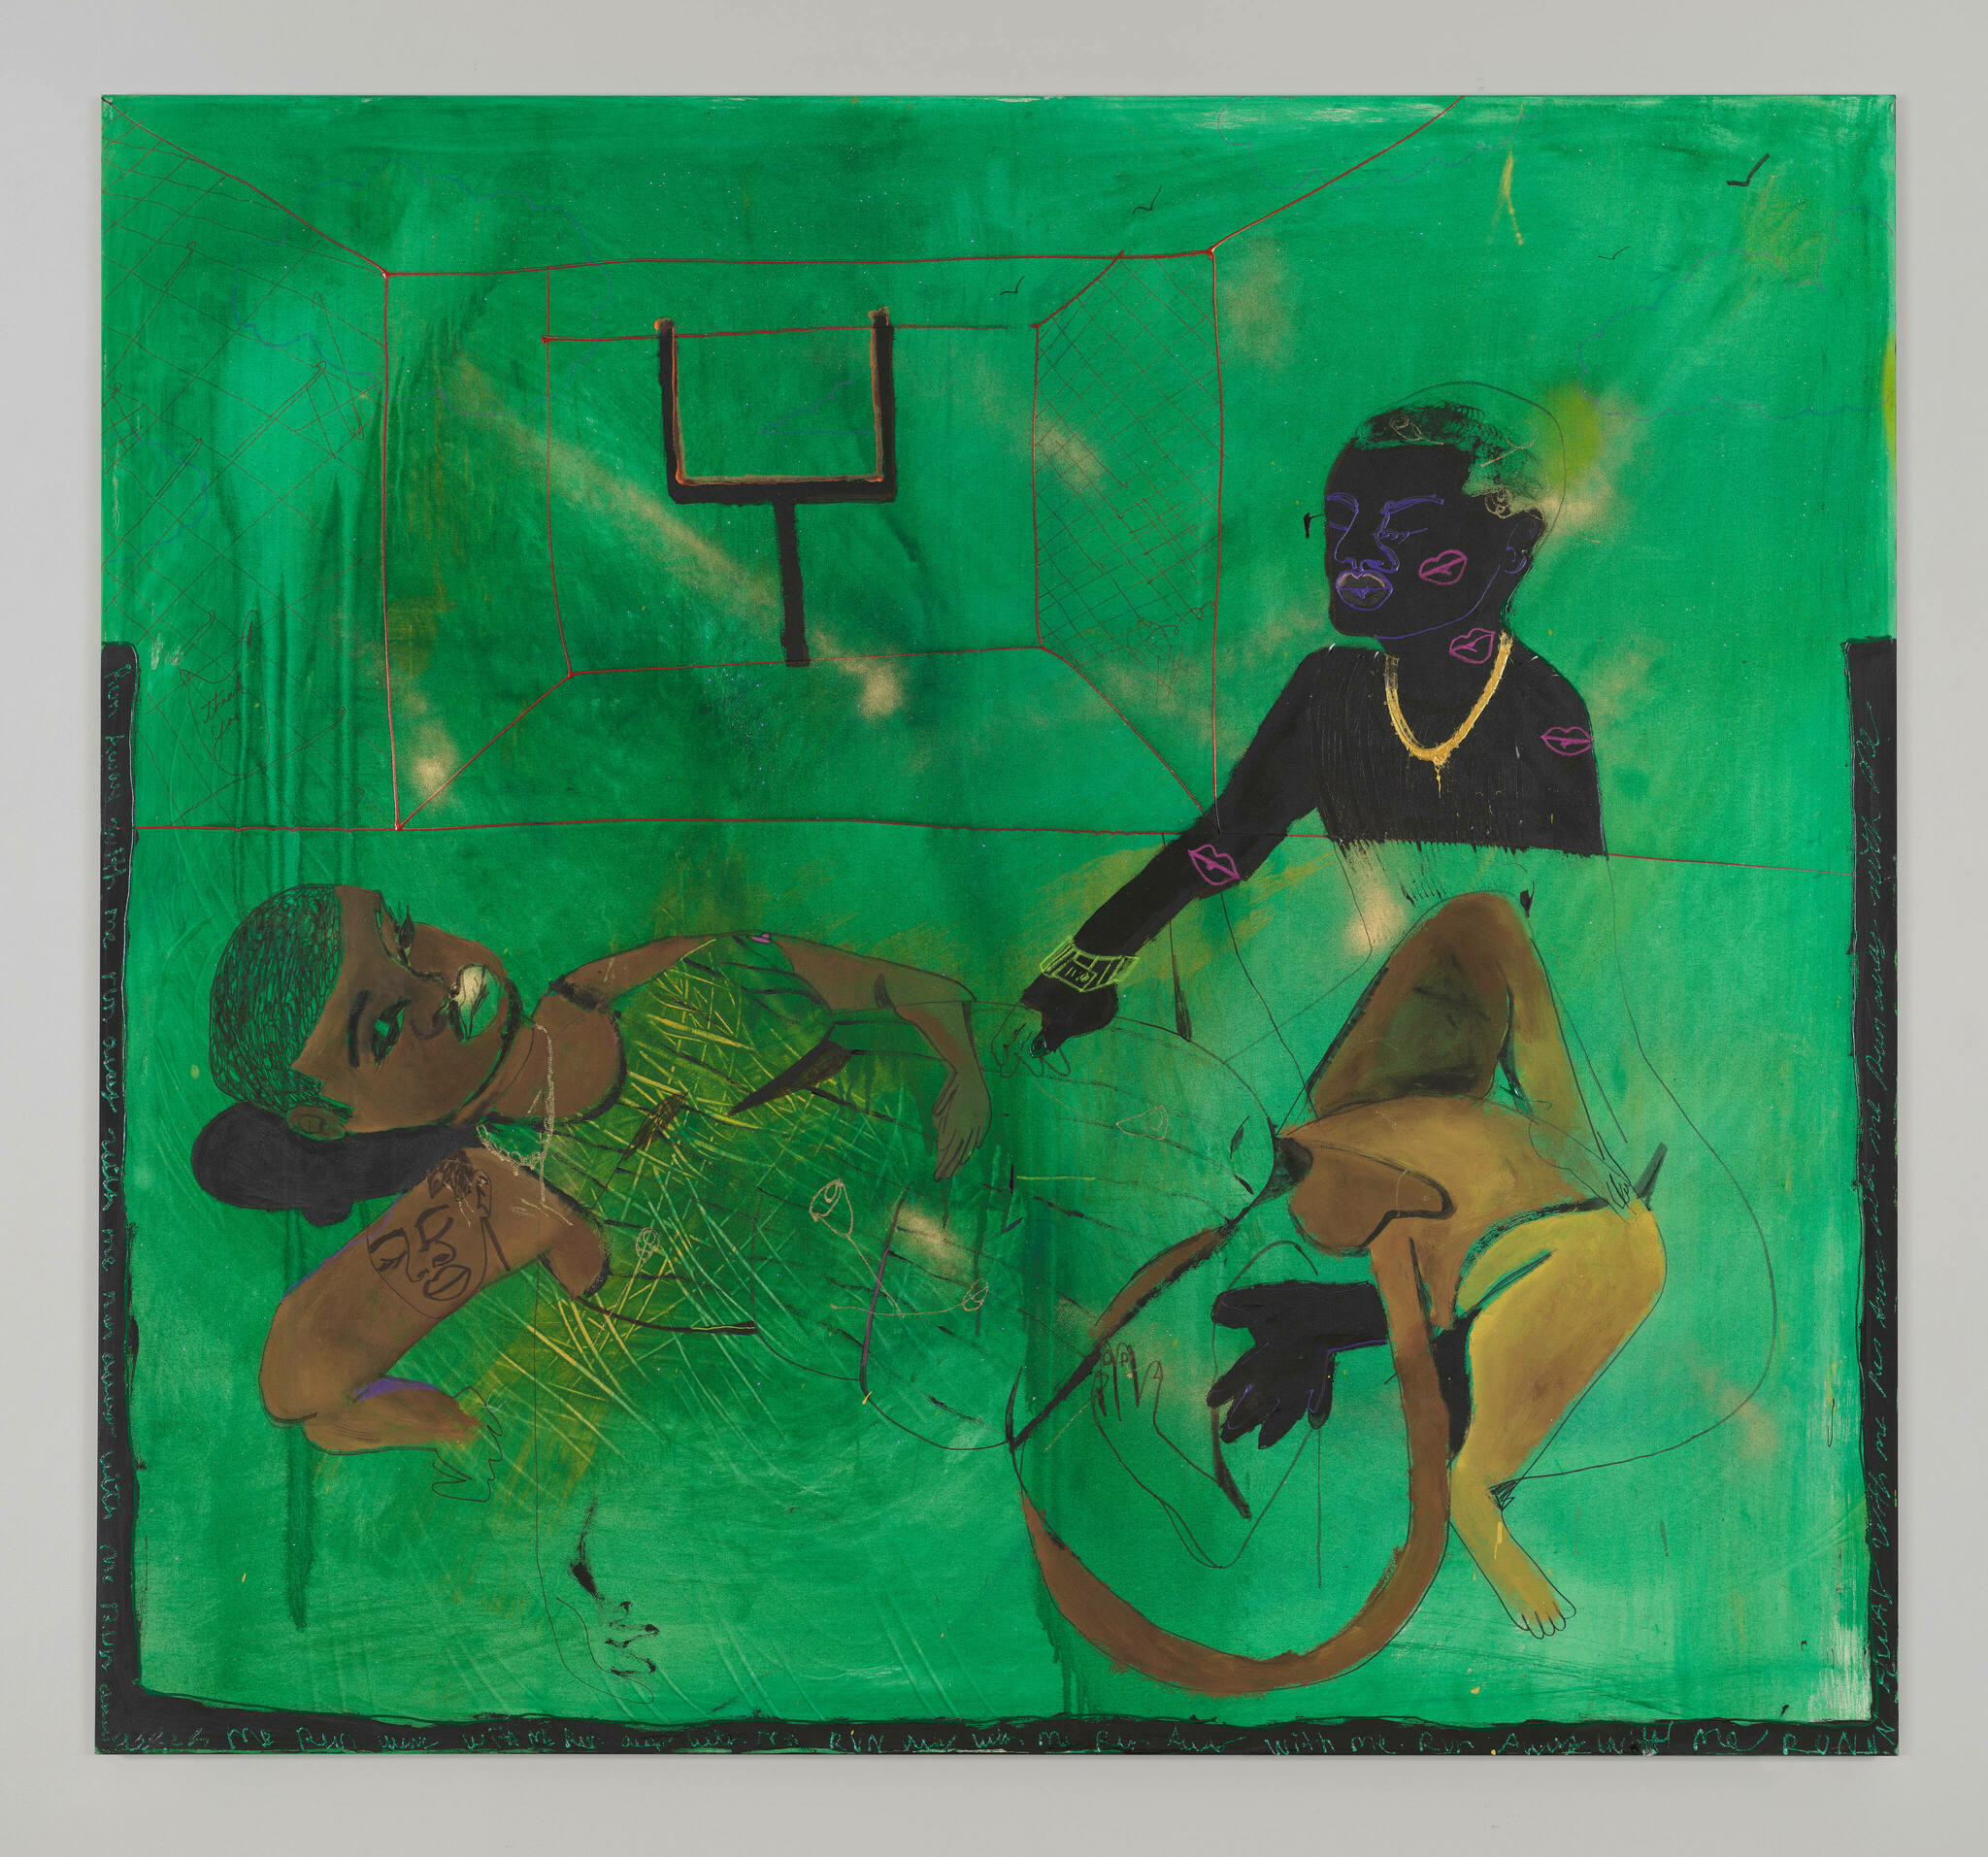 Two short-haired figures with brown and black skin blend together, their nude lower bodies entangled and parts of them vanishing into the green background